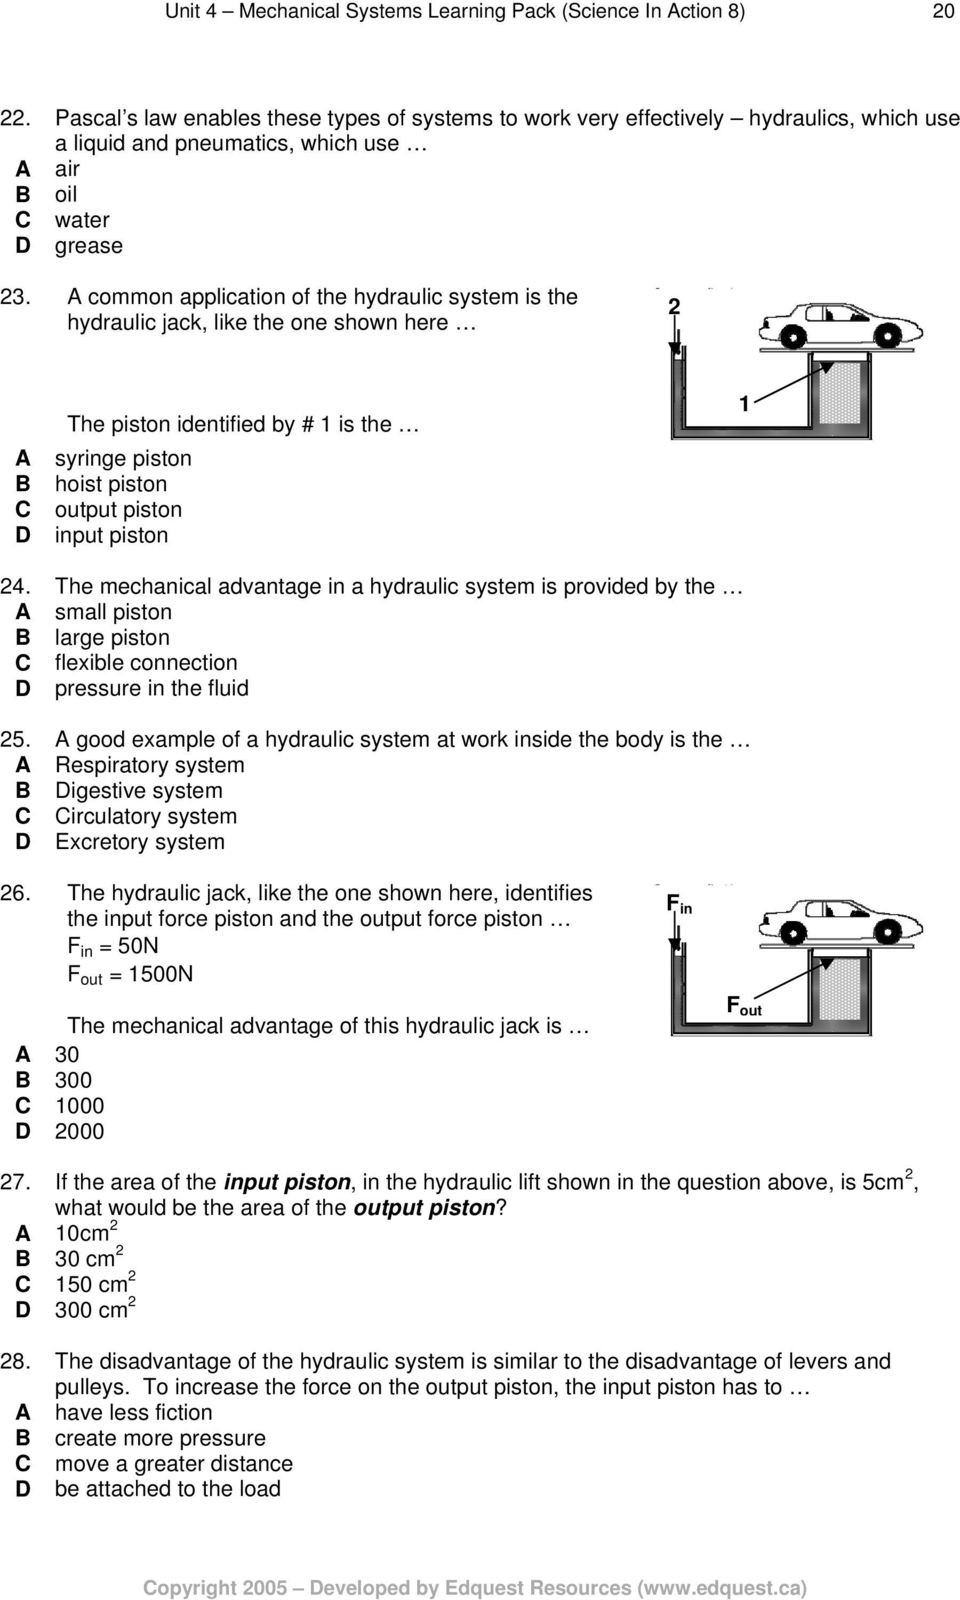 Unit Rate Word Problems Worksheet Unit Mechanical Systems Learning Pack Science In Action